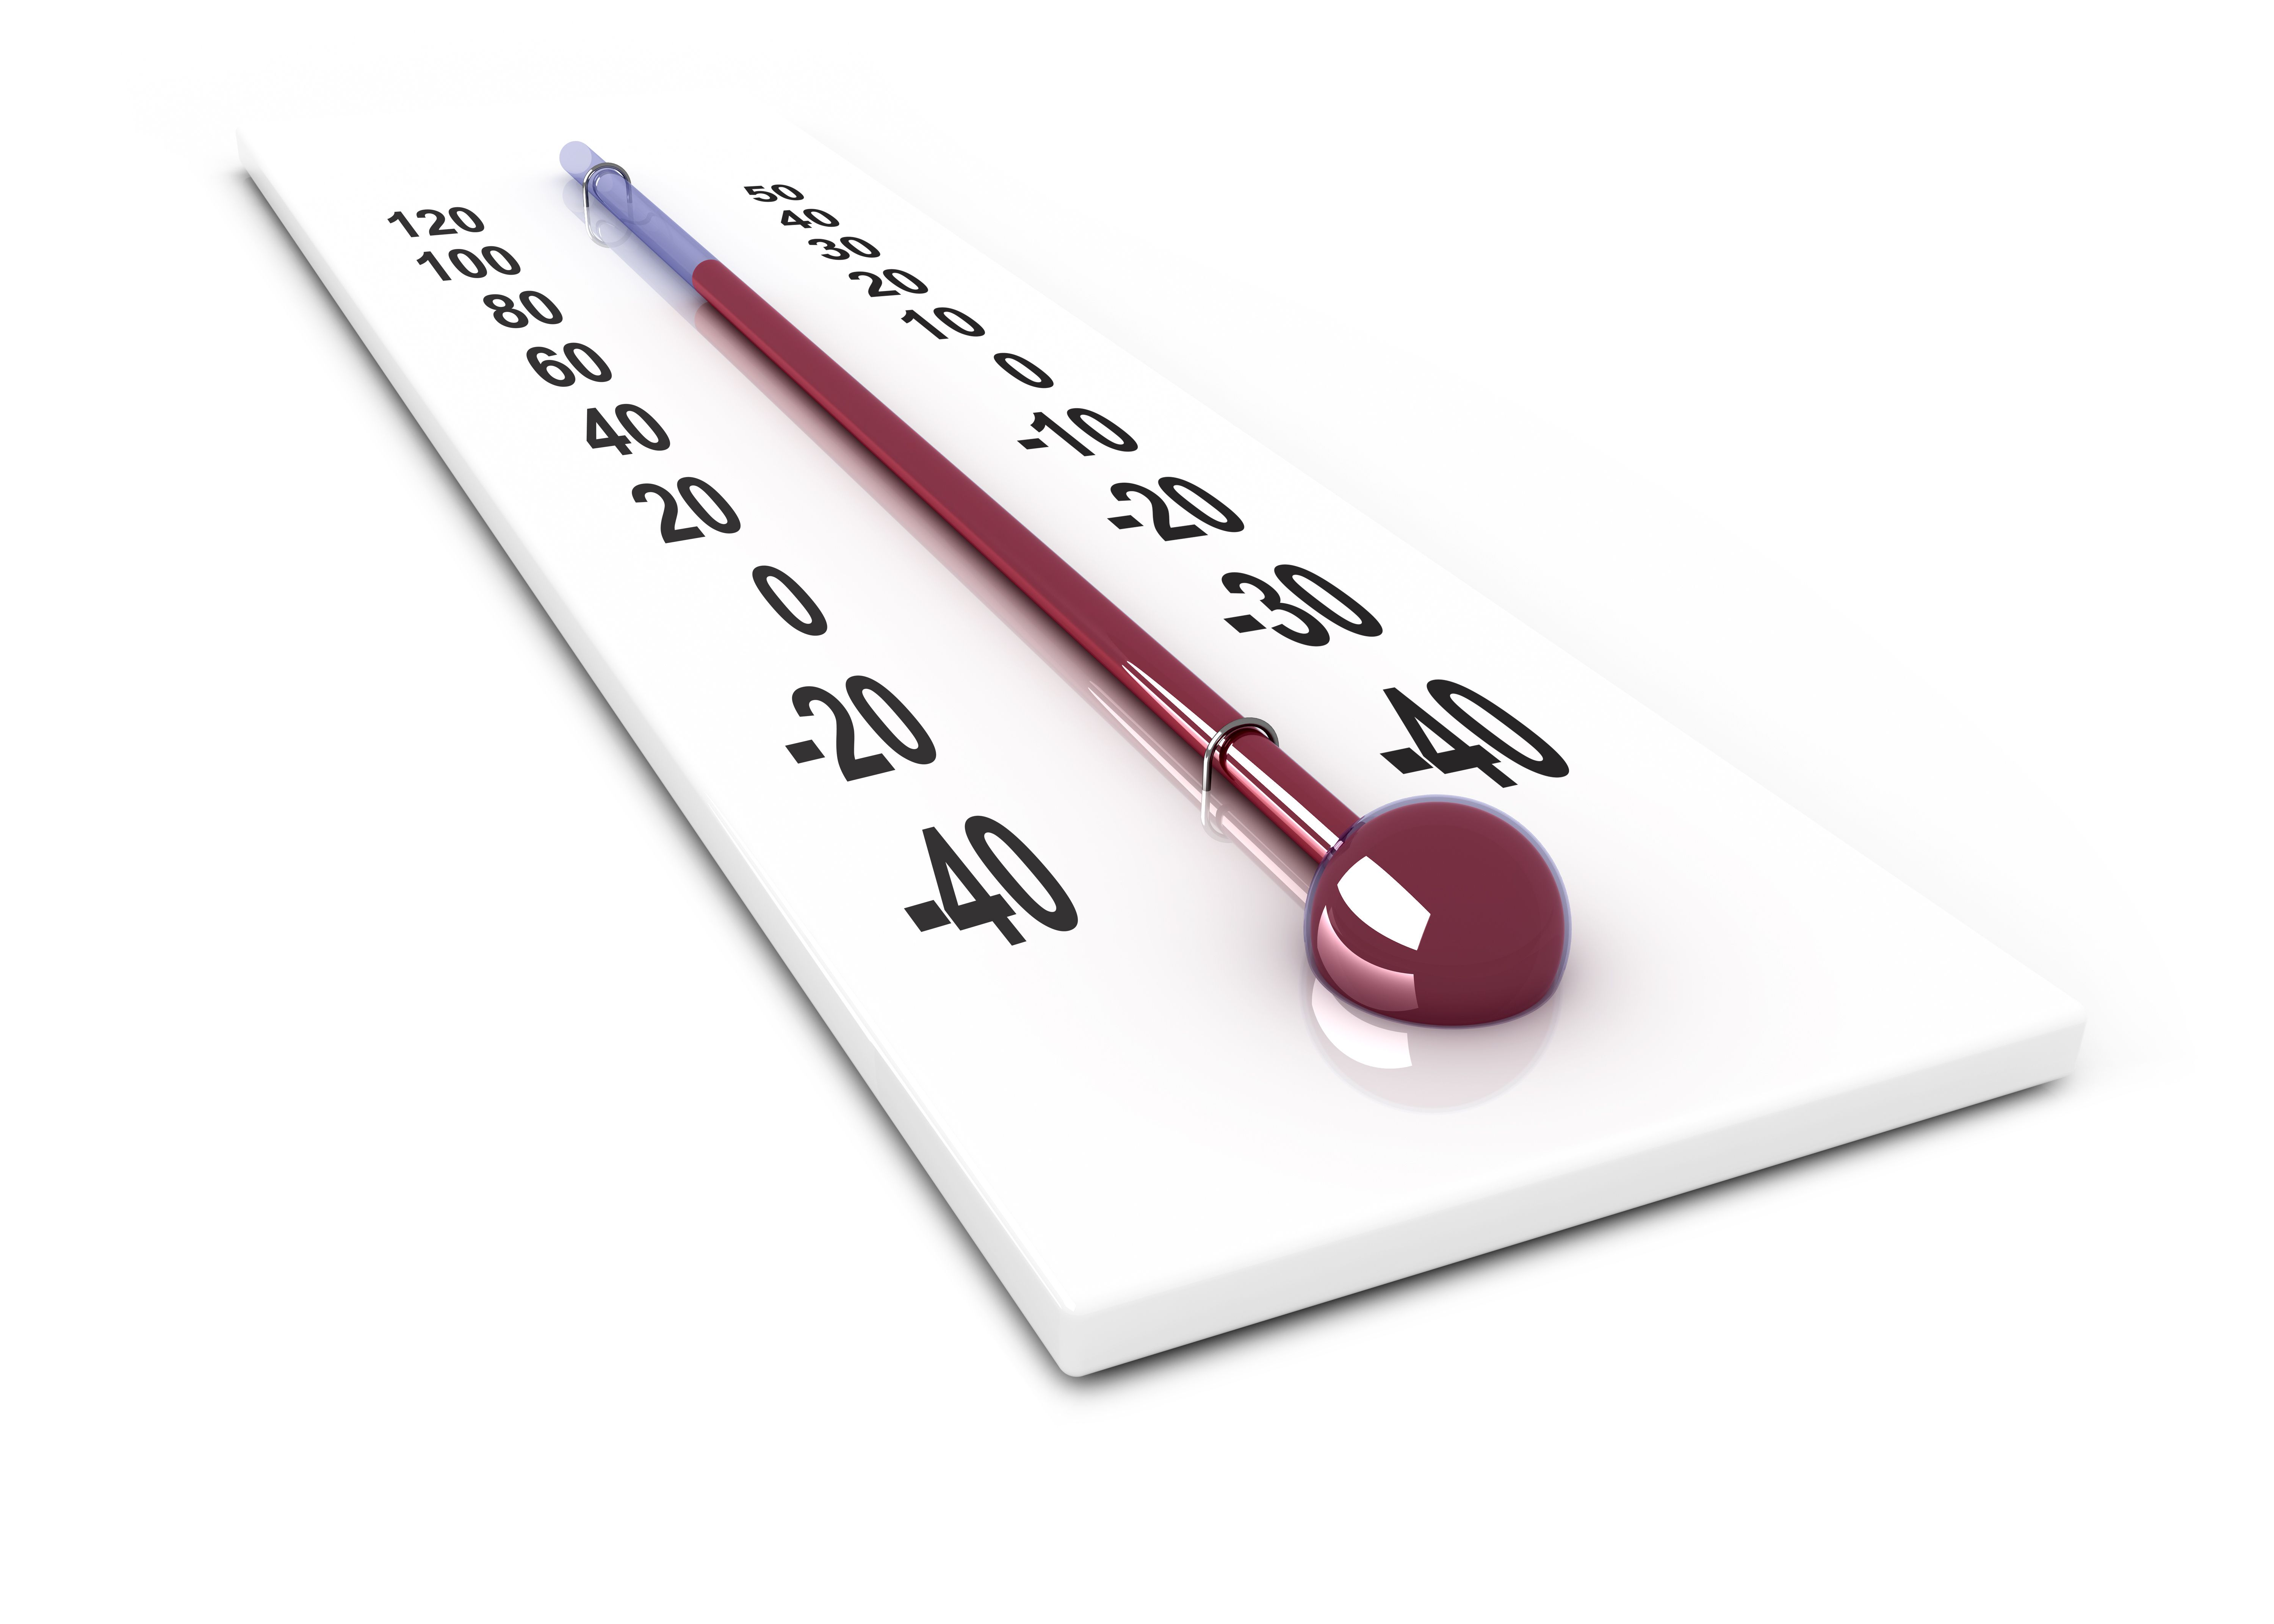 Temperature conversion table kelvin celsius fahrenheit temperature where fahrenheit and celsius are the same nvjuhfo Gallery